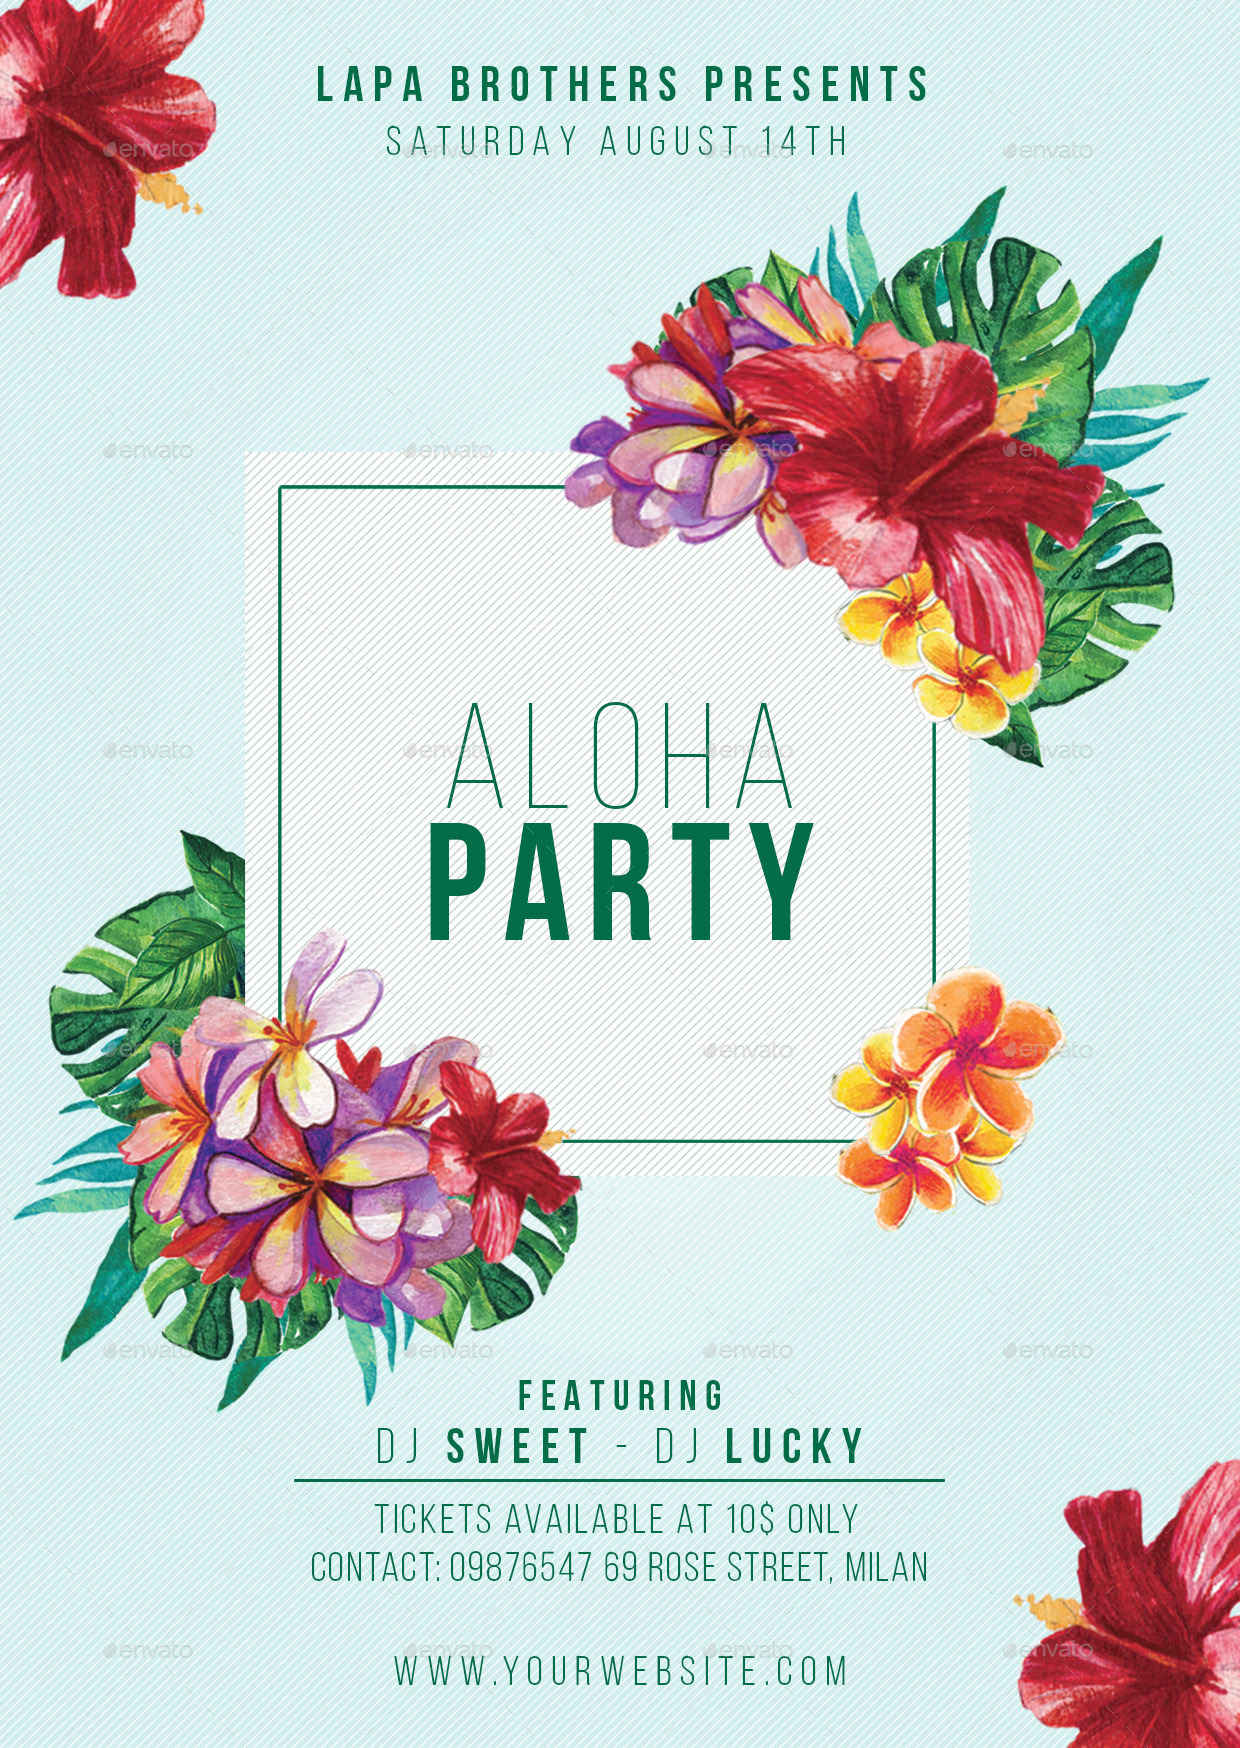 Aloha Party Flyer Template by Lapabrothers | GraphicRiver